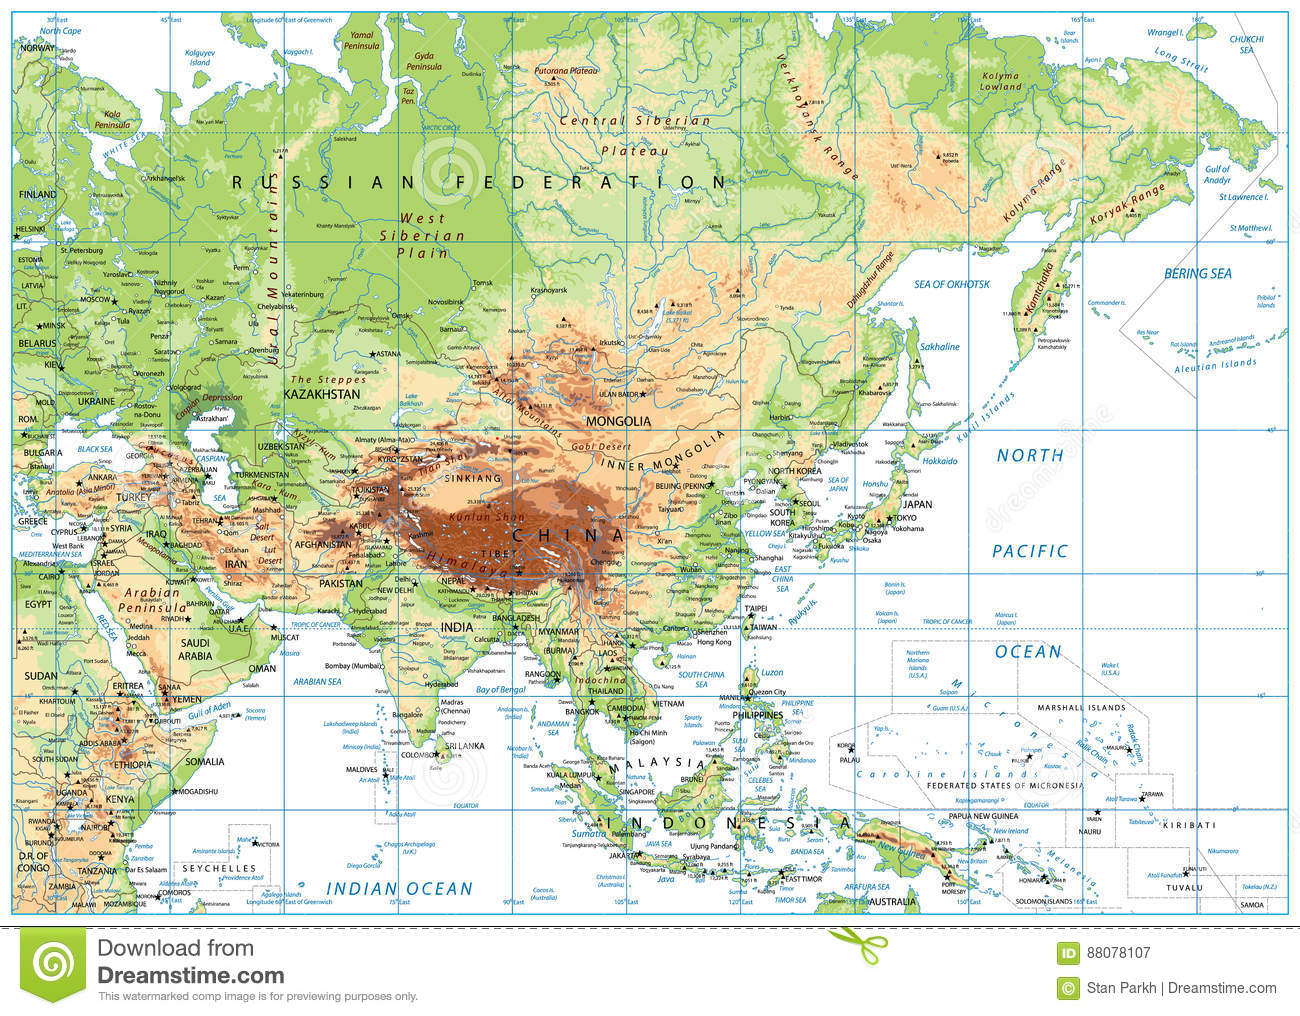 Cartina Asia Fisica.Asia Physical Map Stock Illustrations 6 236 Asia Physical Map Stock Illustrations Vectors Clipart Dreamstime